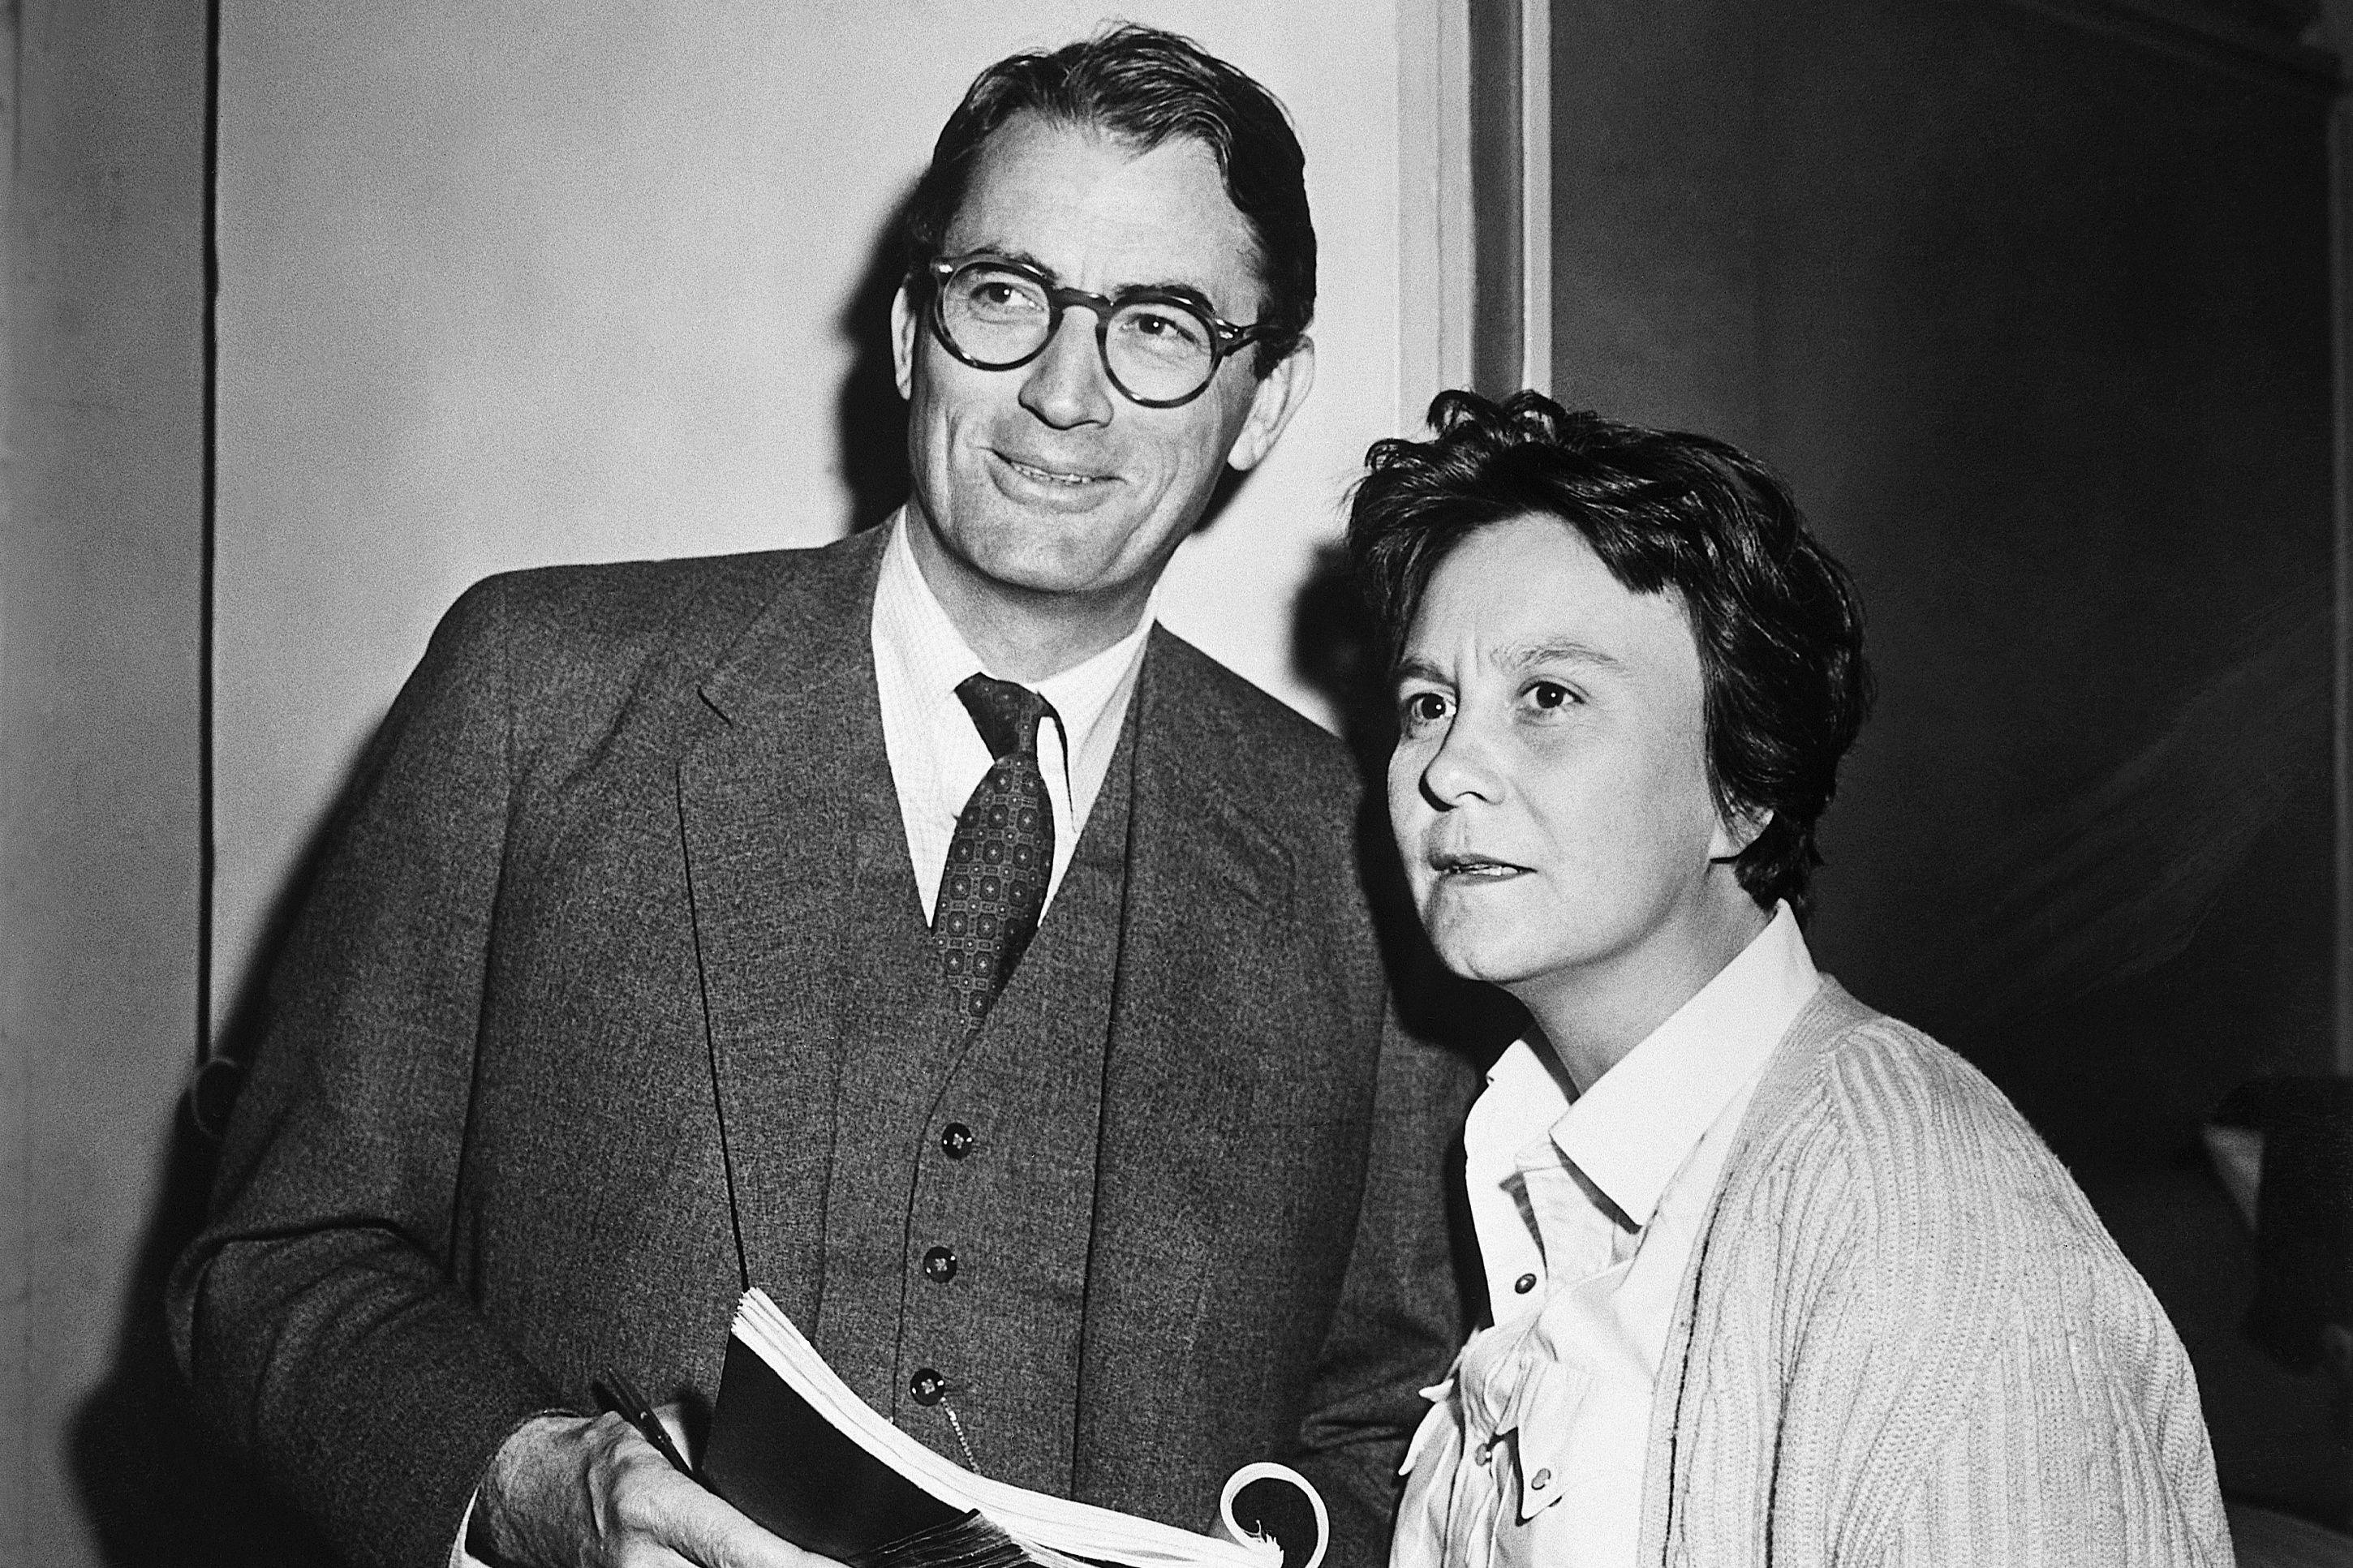 25 Things You Didn't Know About Harper Lee and 'To Kill a Mockingbird'